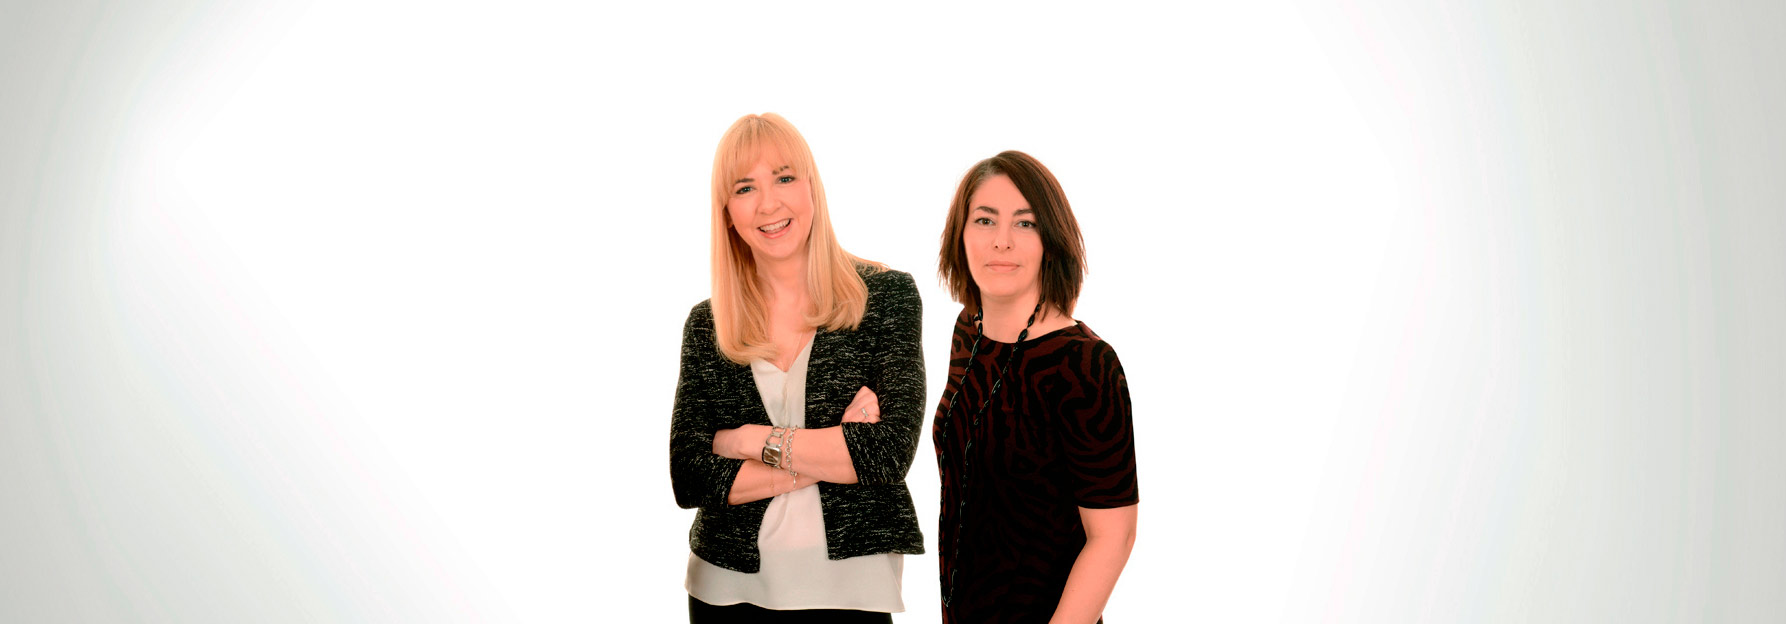 MIDDLETON DAVIES CONTACT US HEADER IMAGE SHOWING REBECCA MIDDLETON AND NIKKI DAVIES